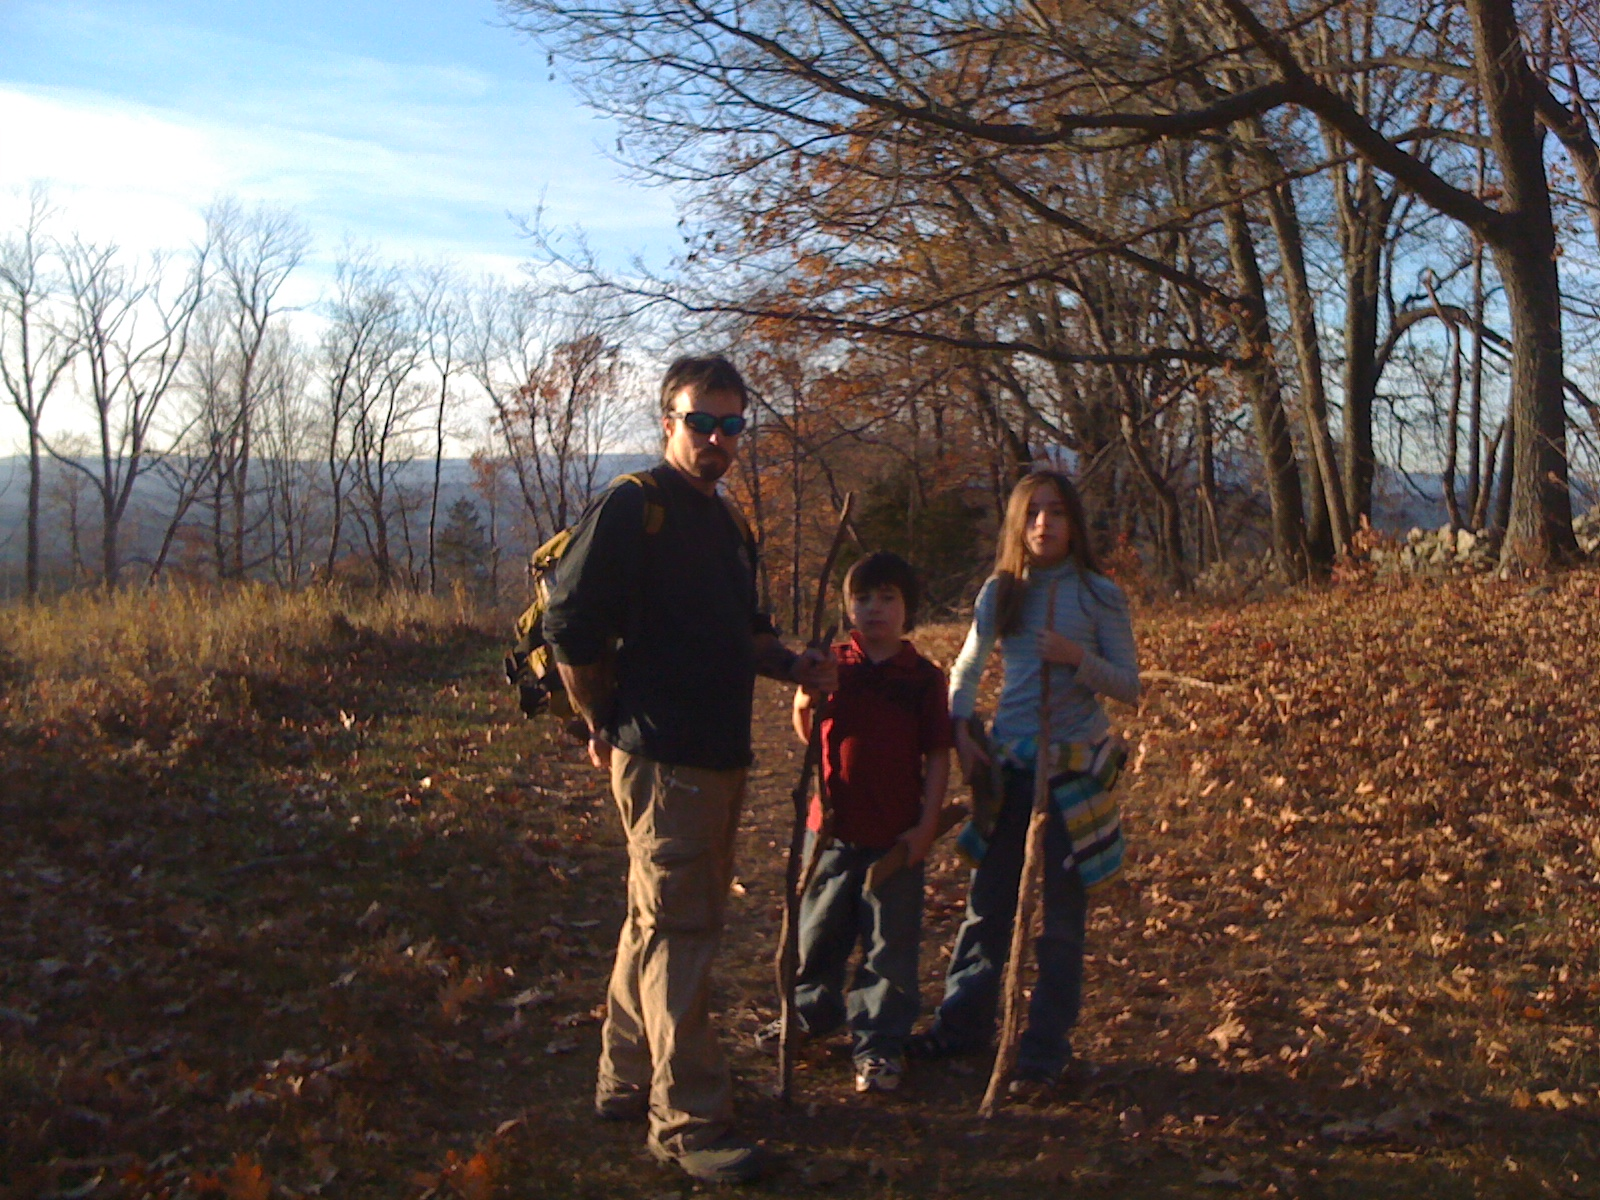 hiking with family